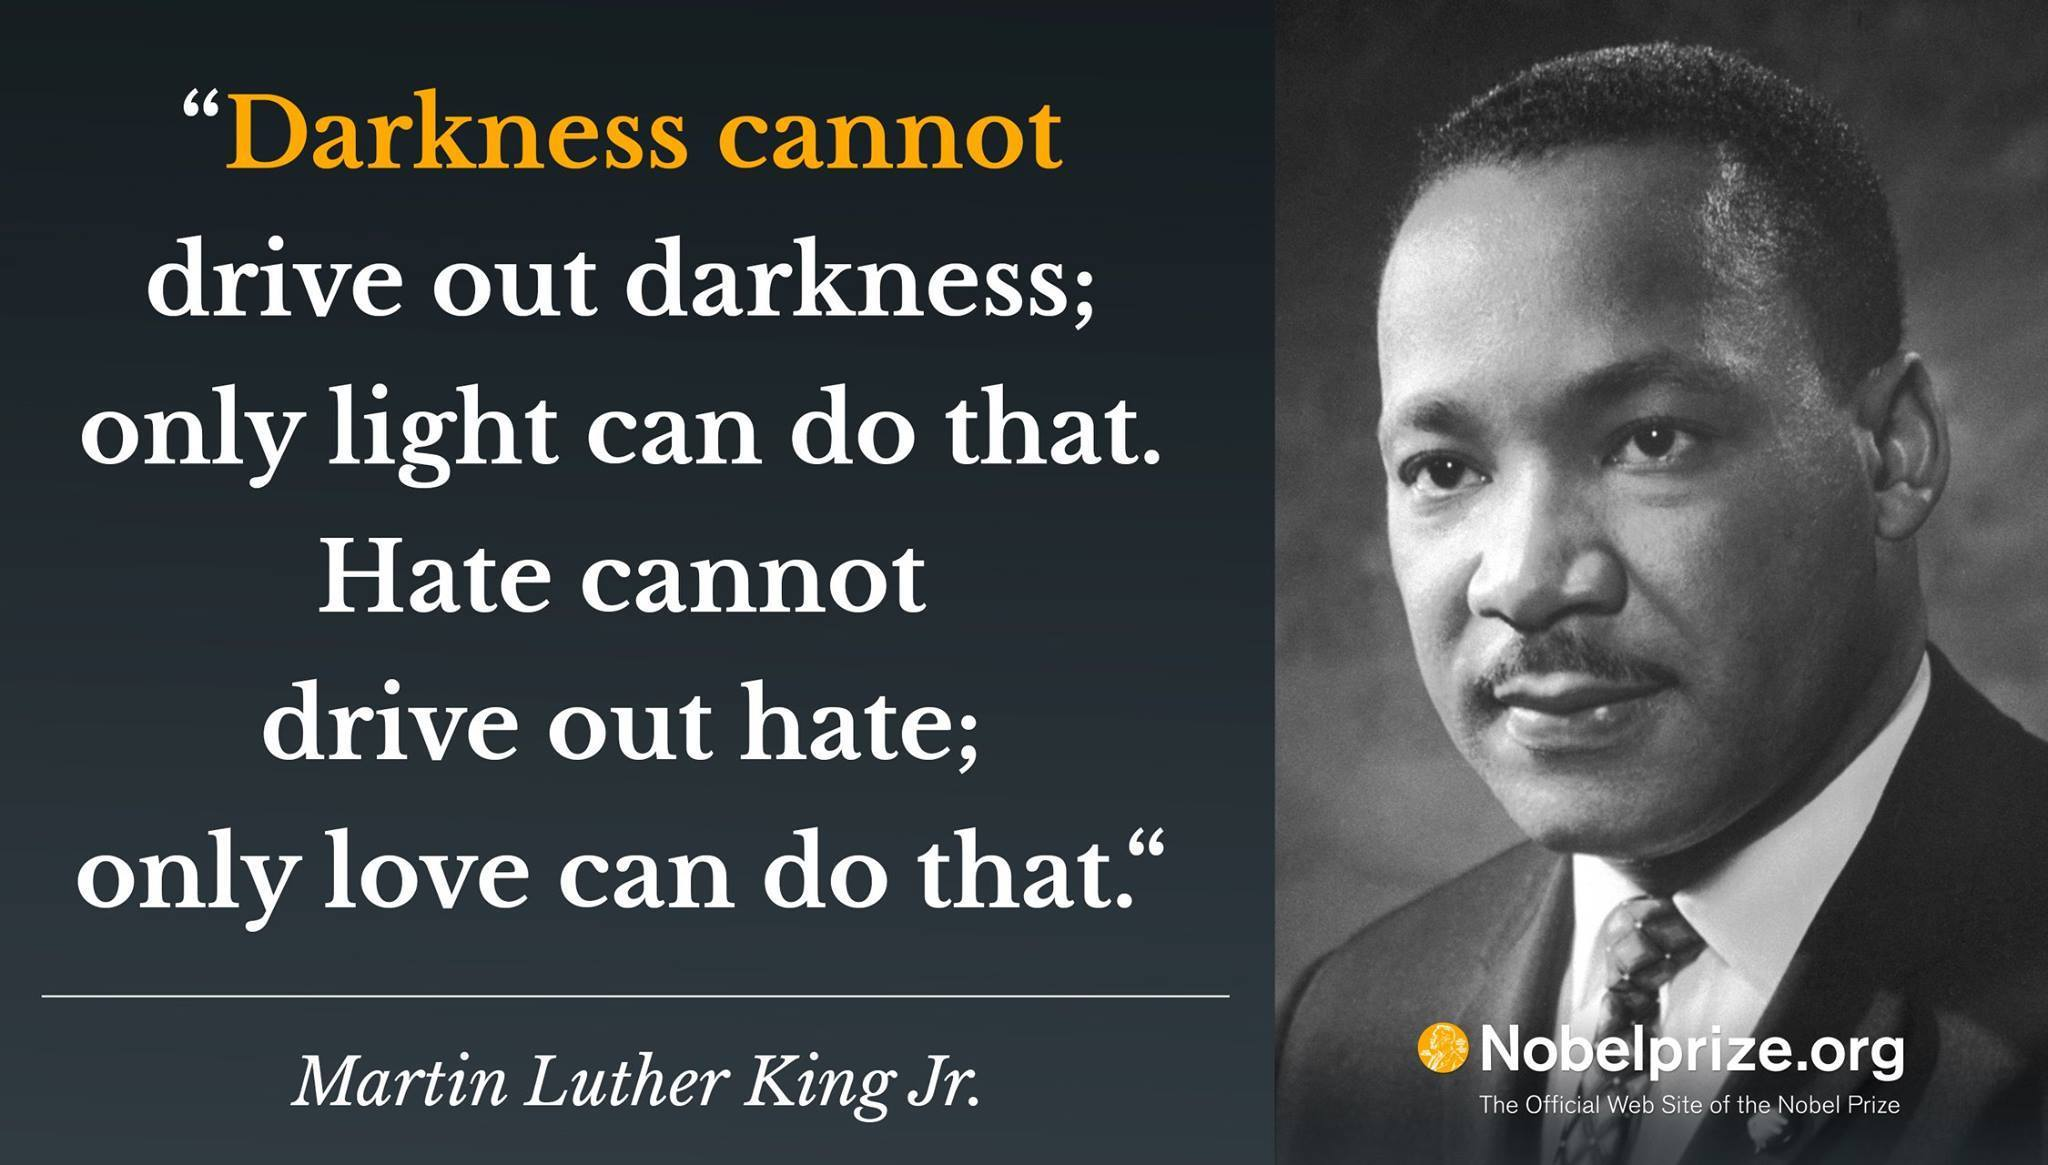 """Darkness cannot drive out darkness; only light can do that. Hate cannot drive out hate; only love can do that."" – Dr. Martin Luther King Jr."" [2048×1165]"